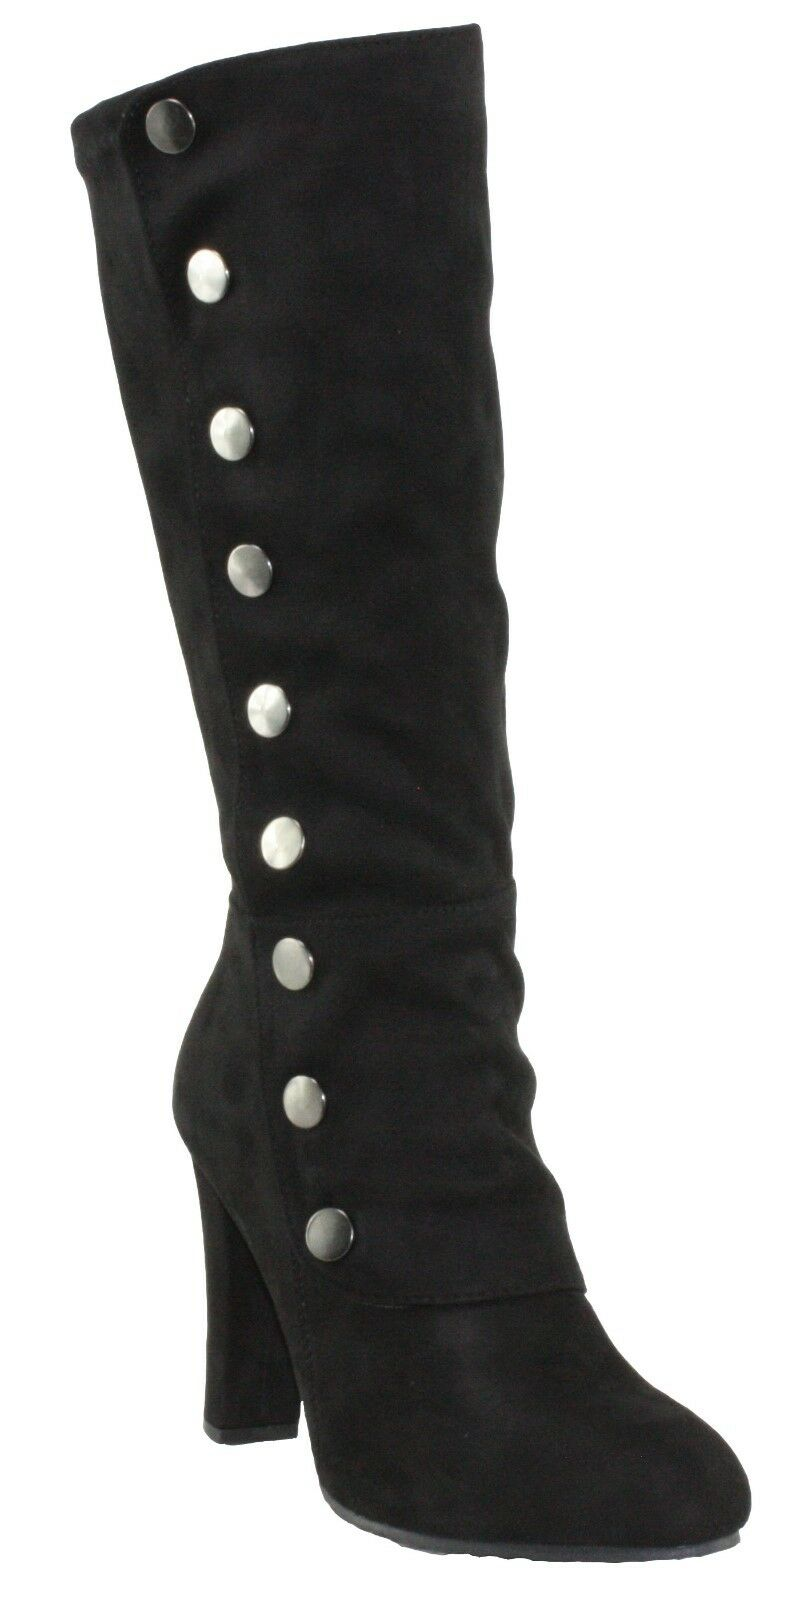 Forever Women's Dasia-42 Faux Suede Mid-Calf Block High Heel Dress Boots